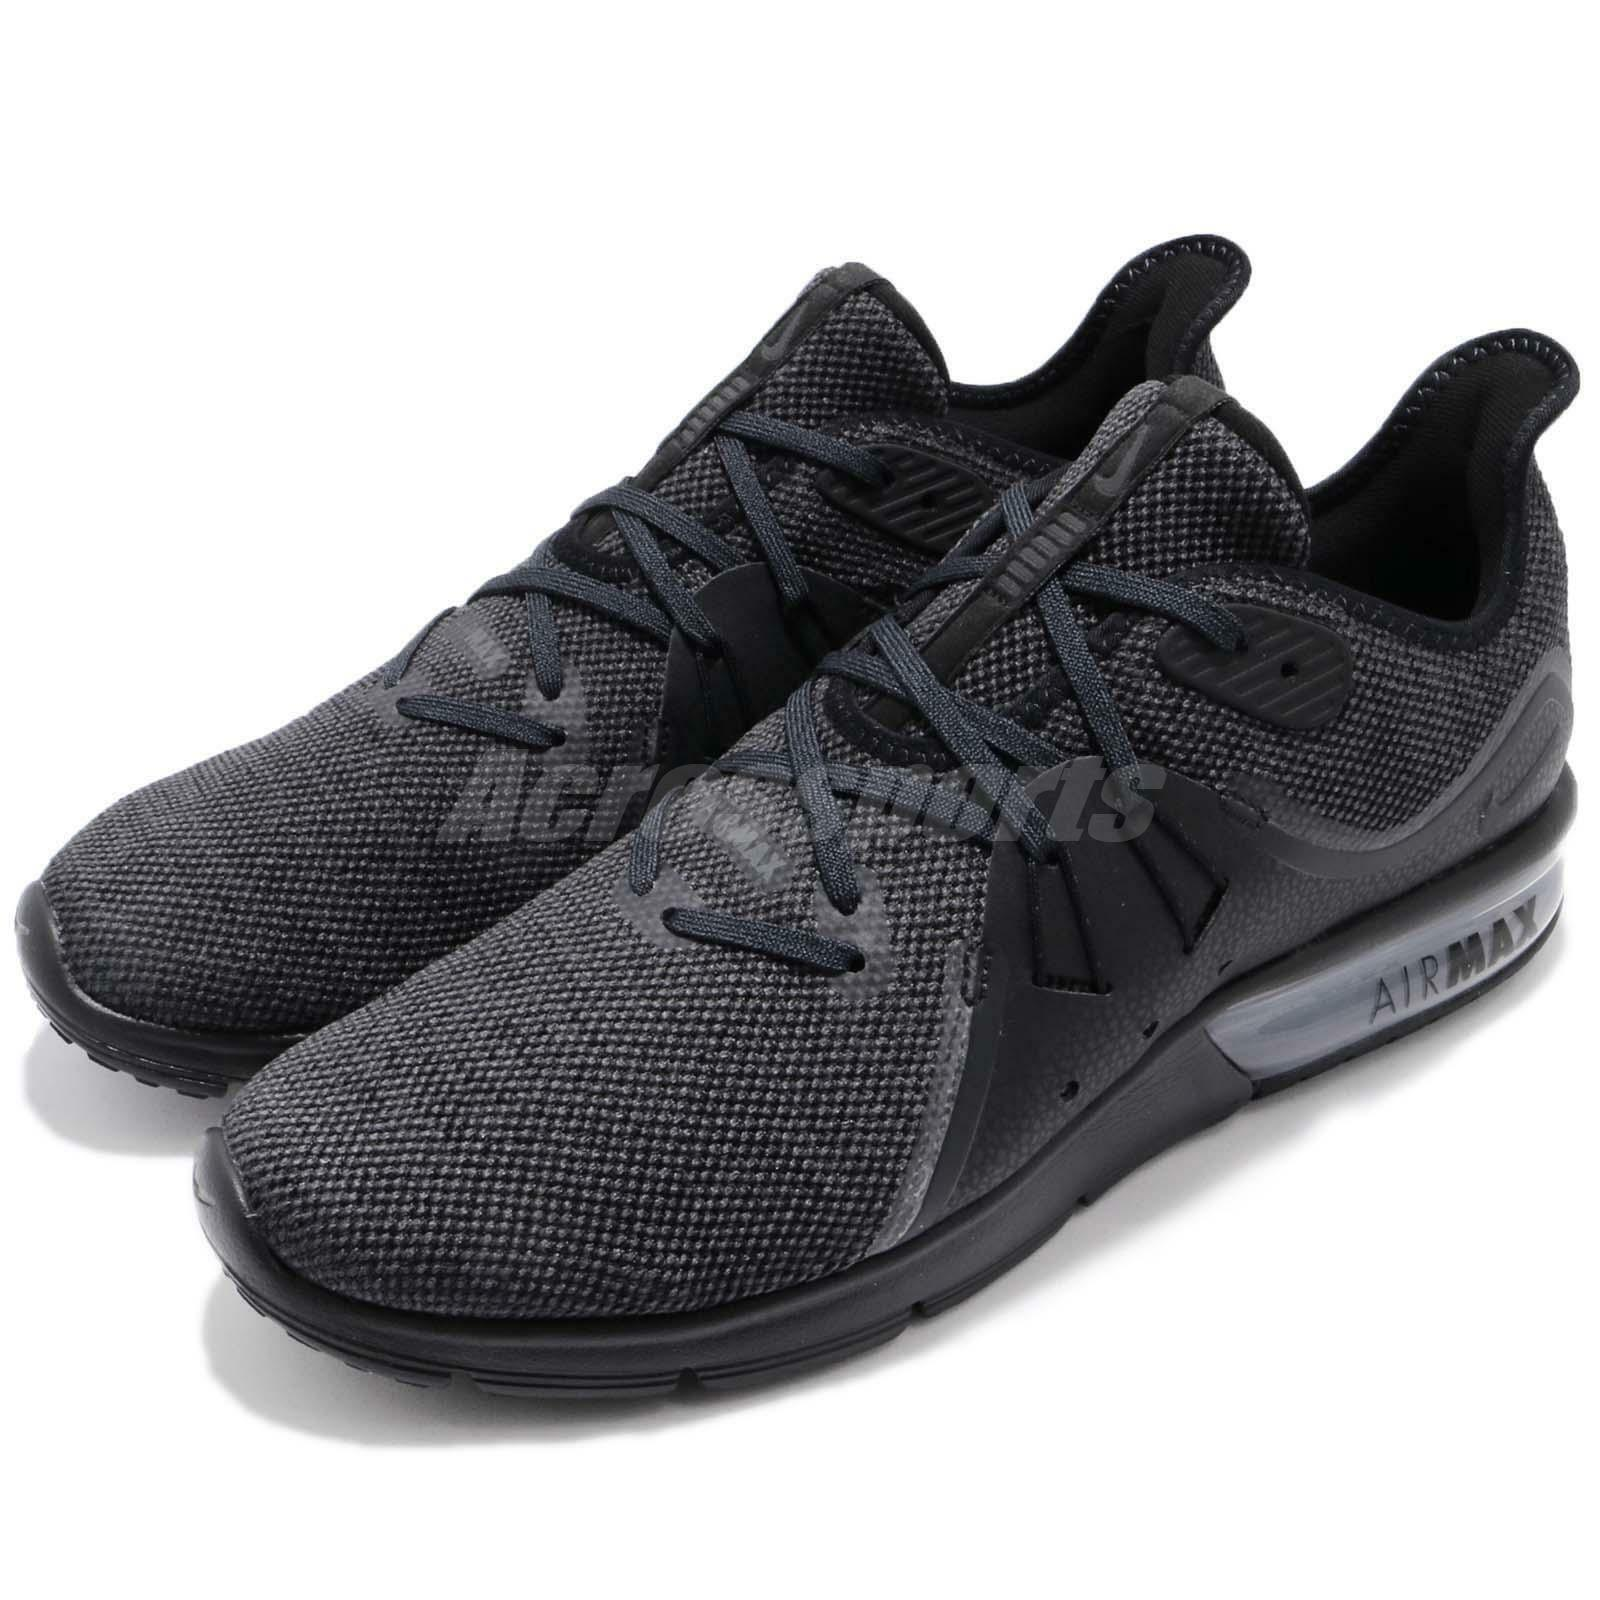 Nike Air Max Sequent 3 III noir Anthracite  Gris  homme fonctionnement chaussures 921694-010